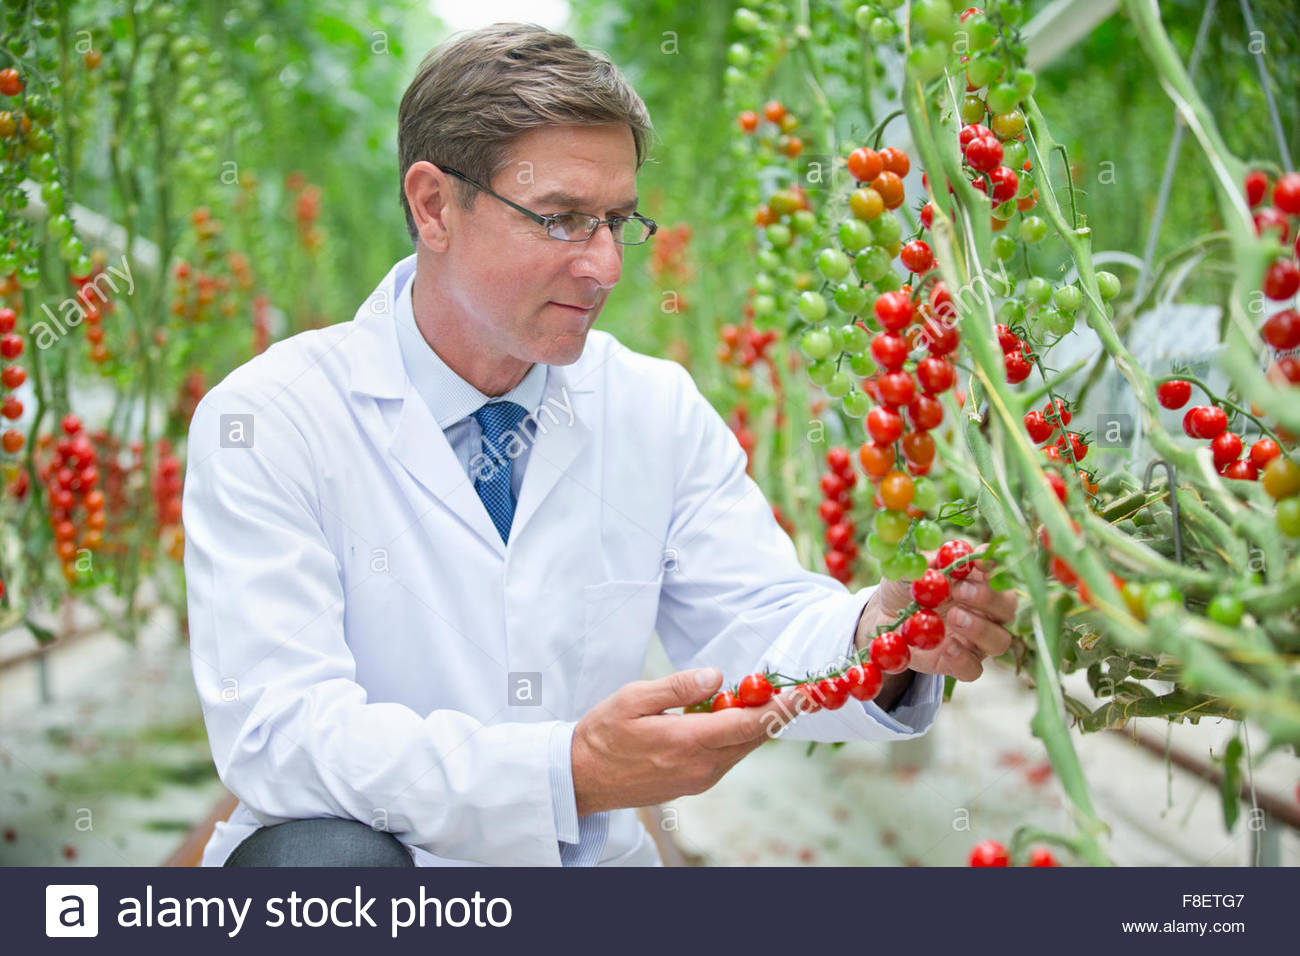 Food scientist examining ripe red vine tomato plants - Stock Image